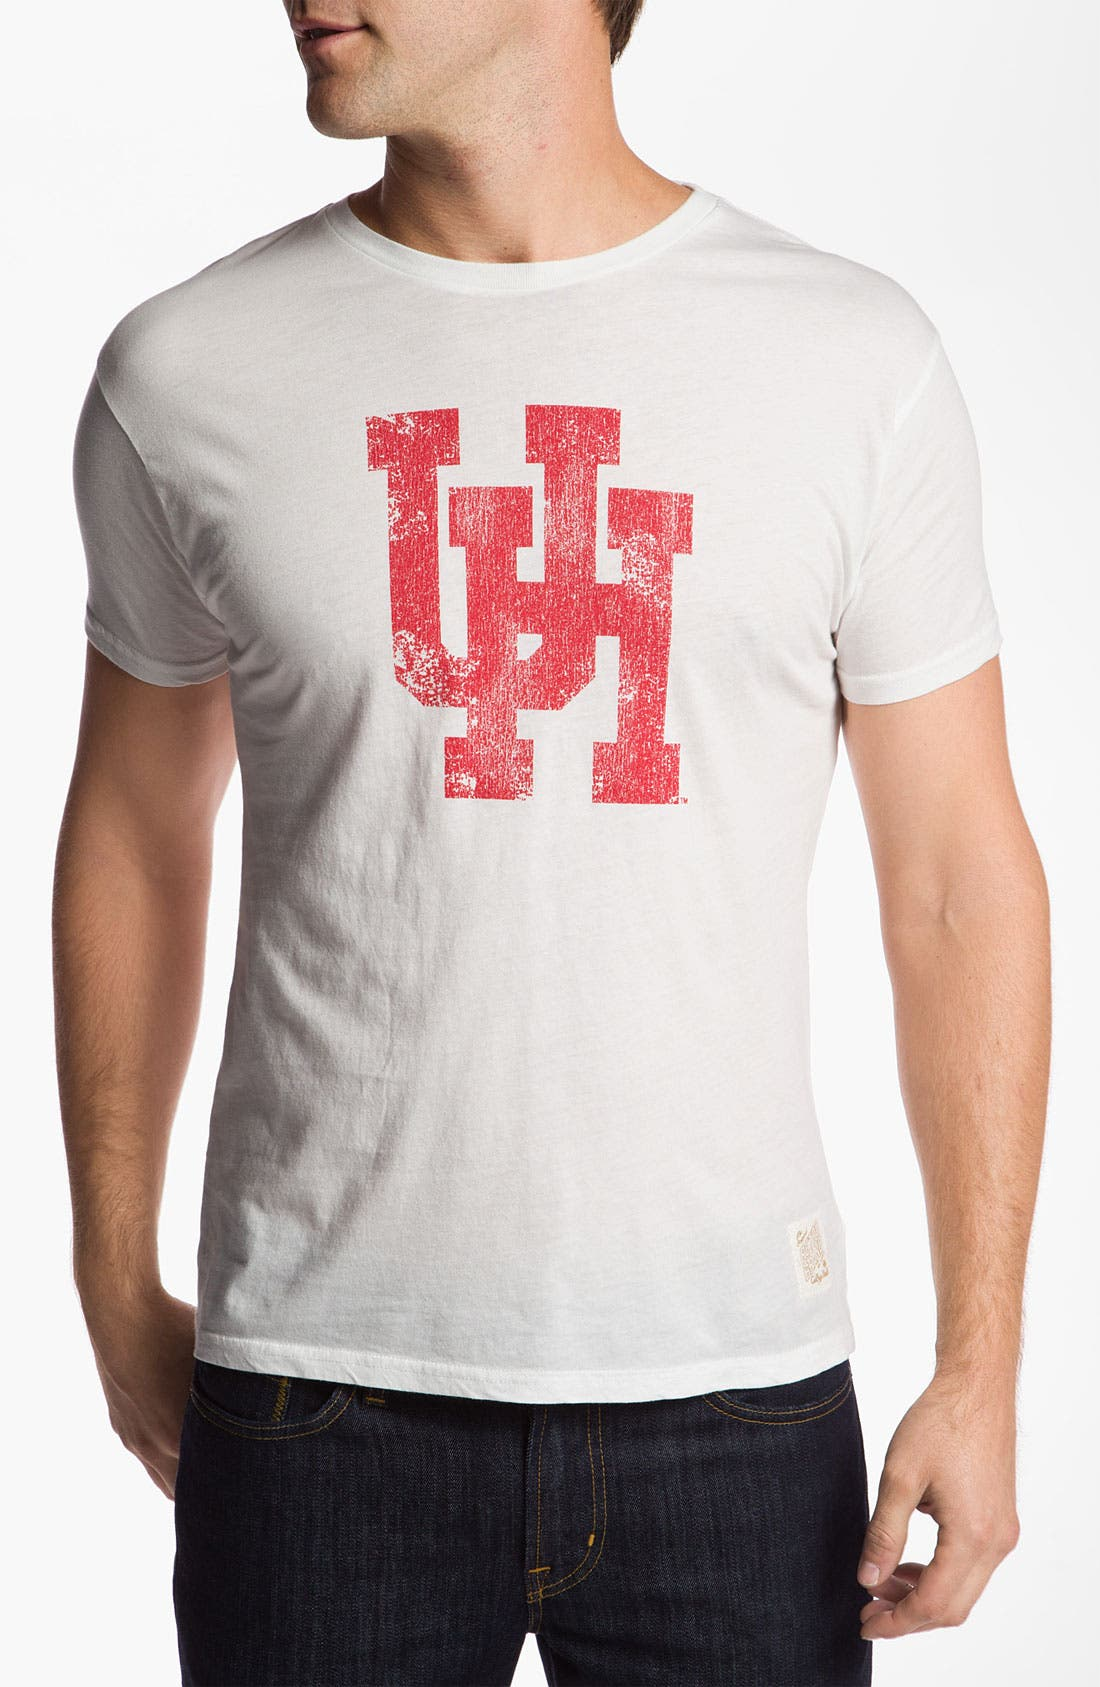 Main Image - The Original Retro Brand 'Houston Cougars' T-Shirt